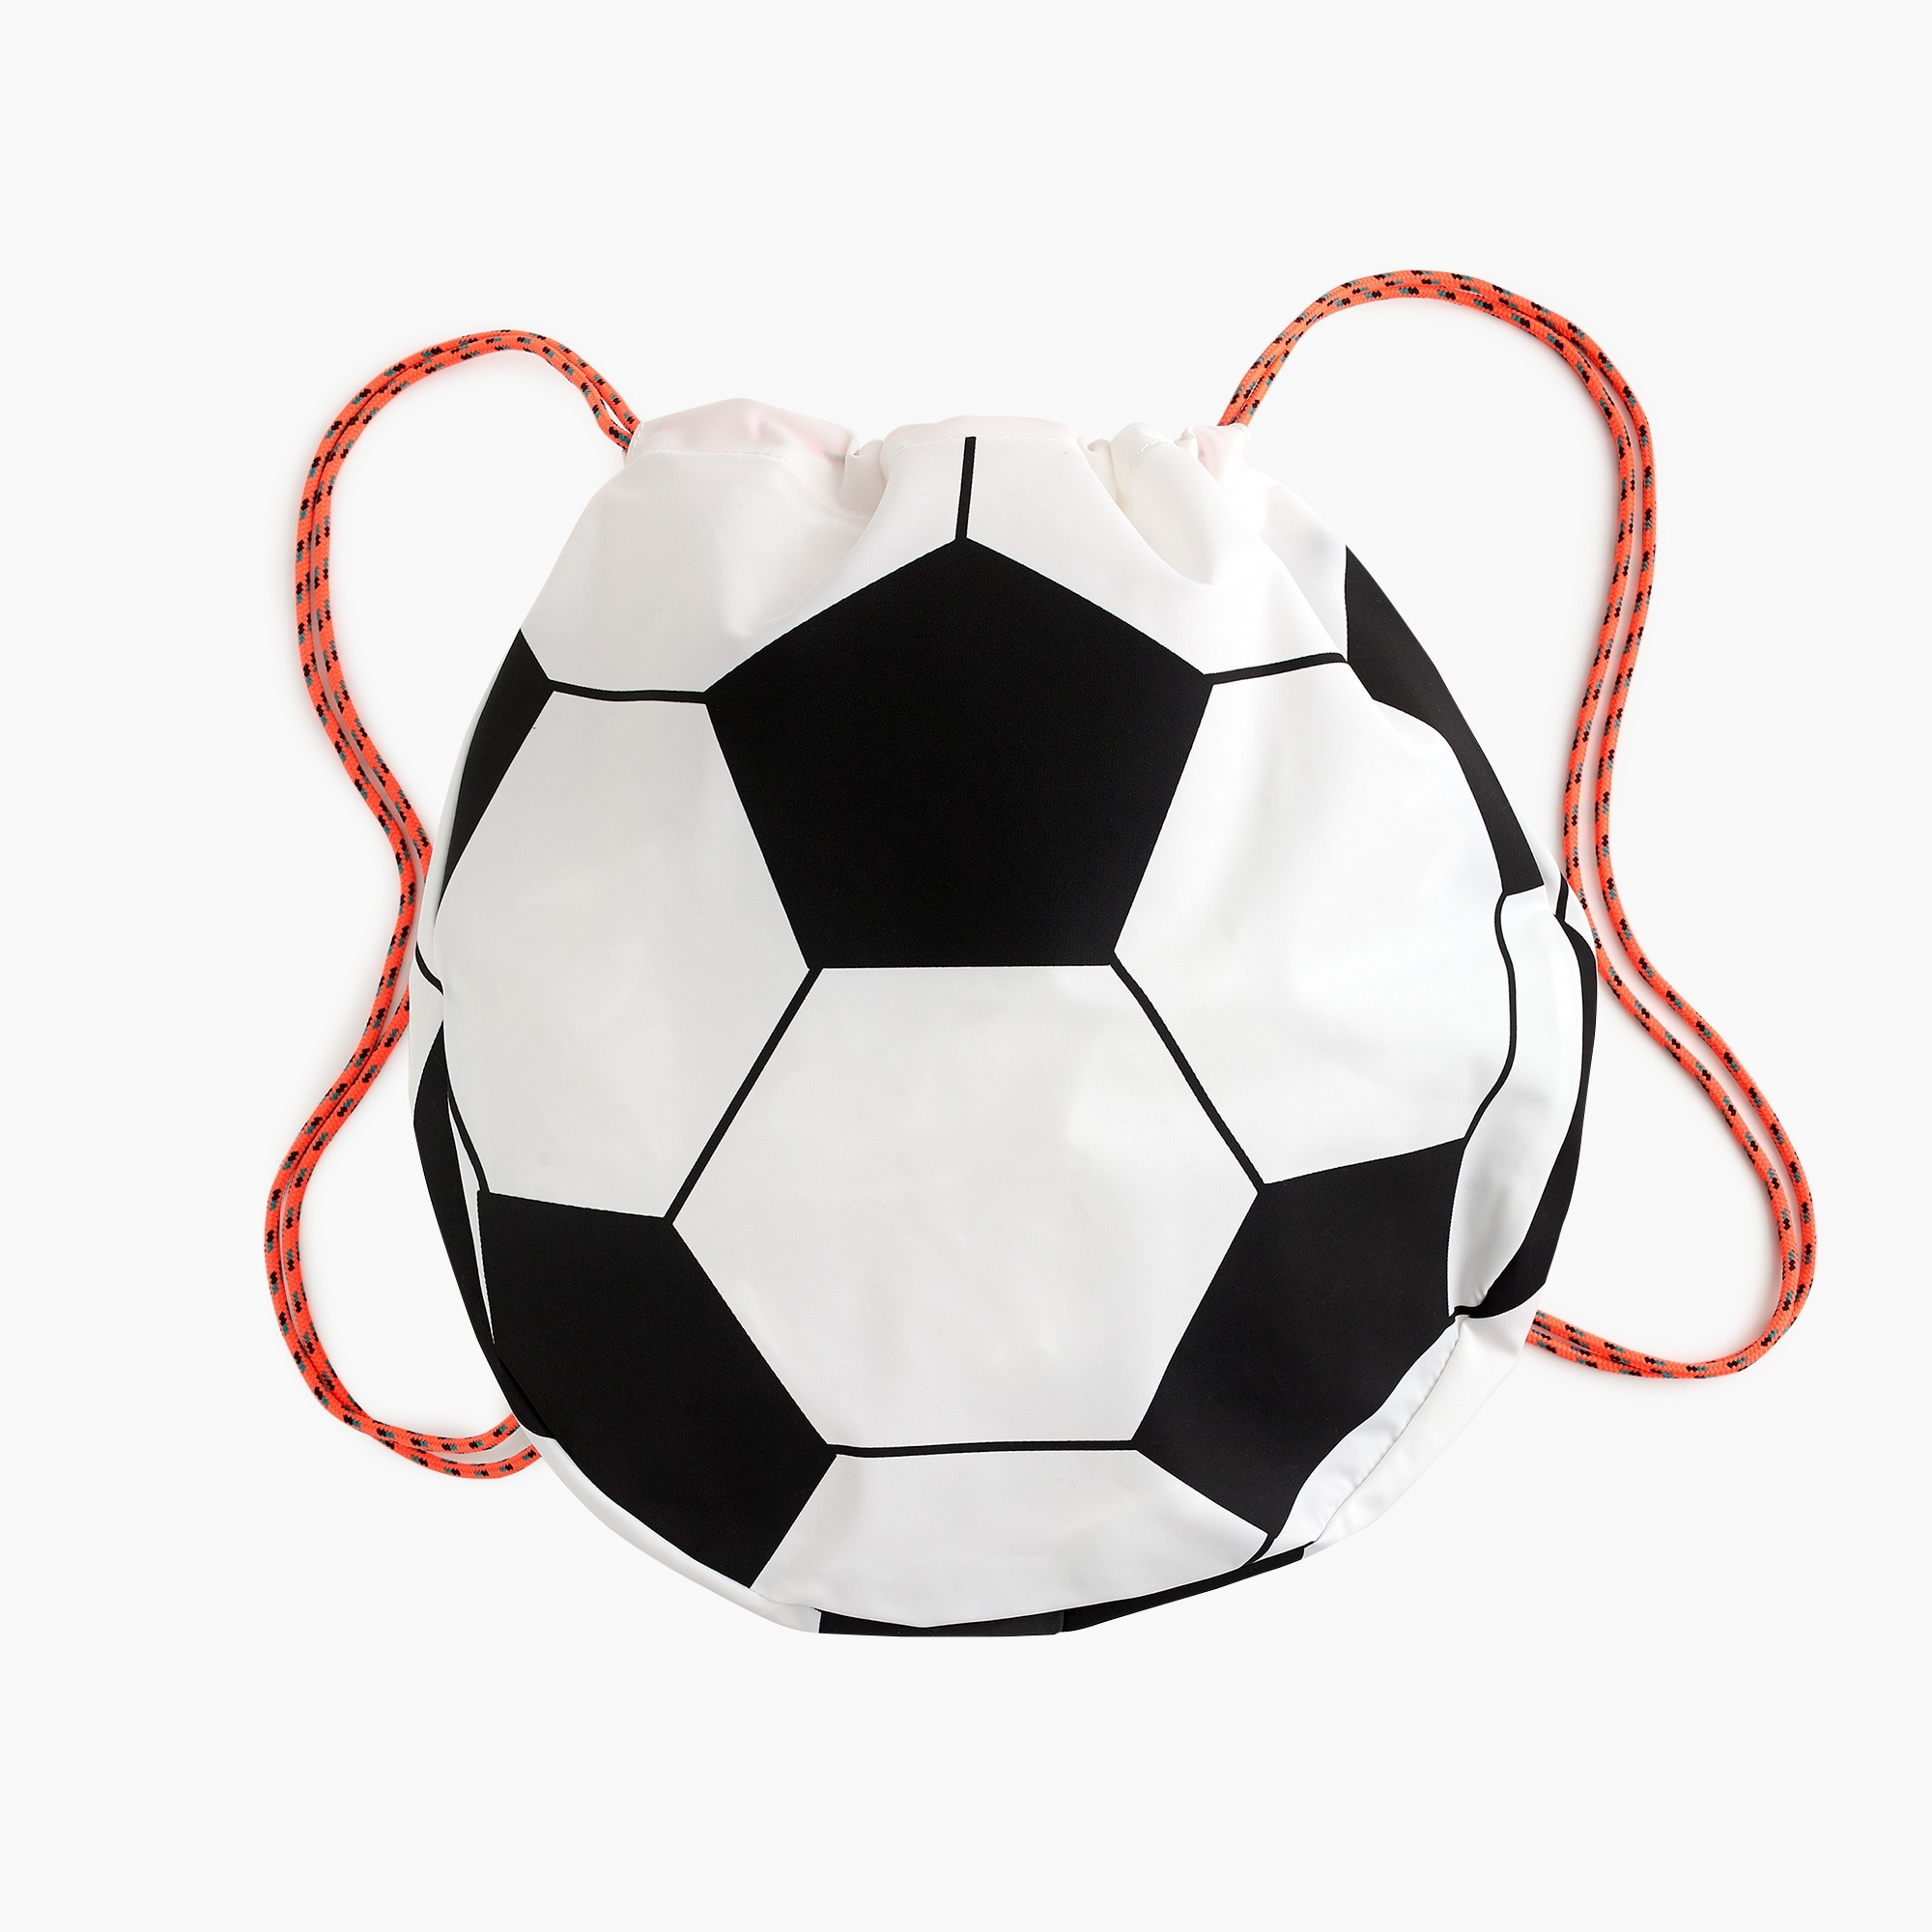 Kids' soccer ball-shaped drawstring backpack boy accessories c